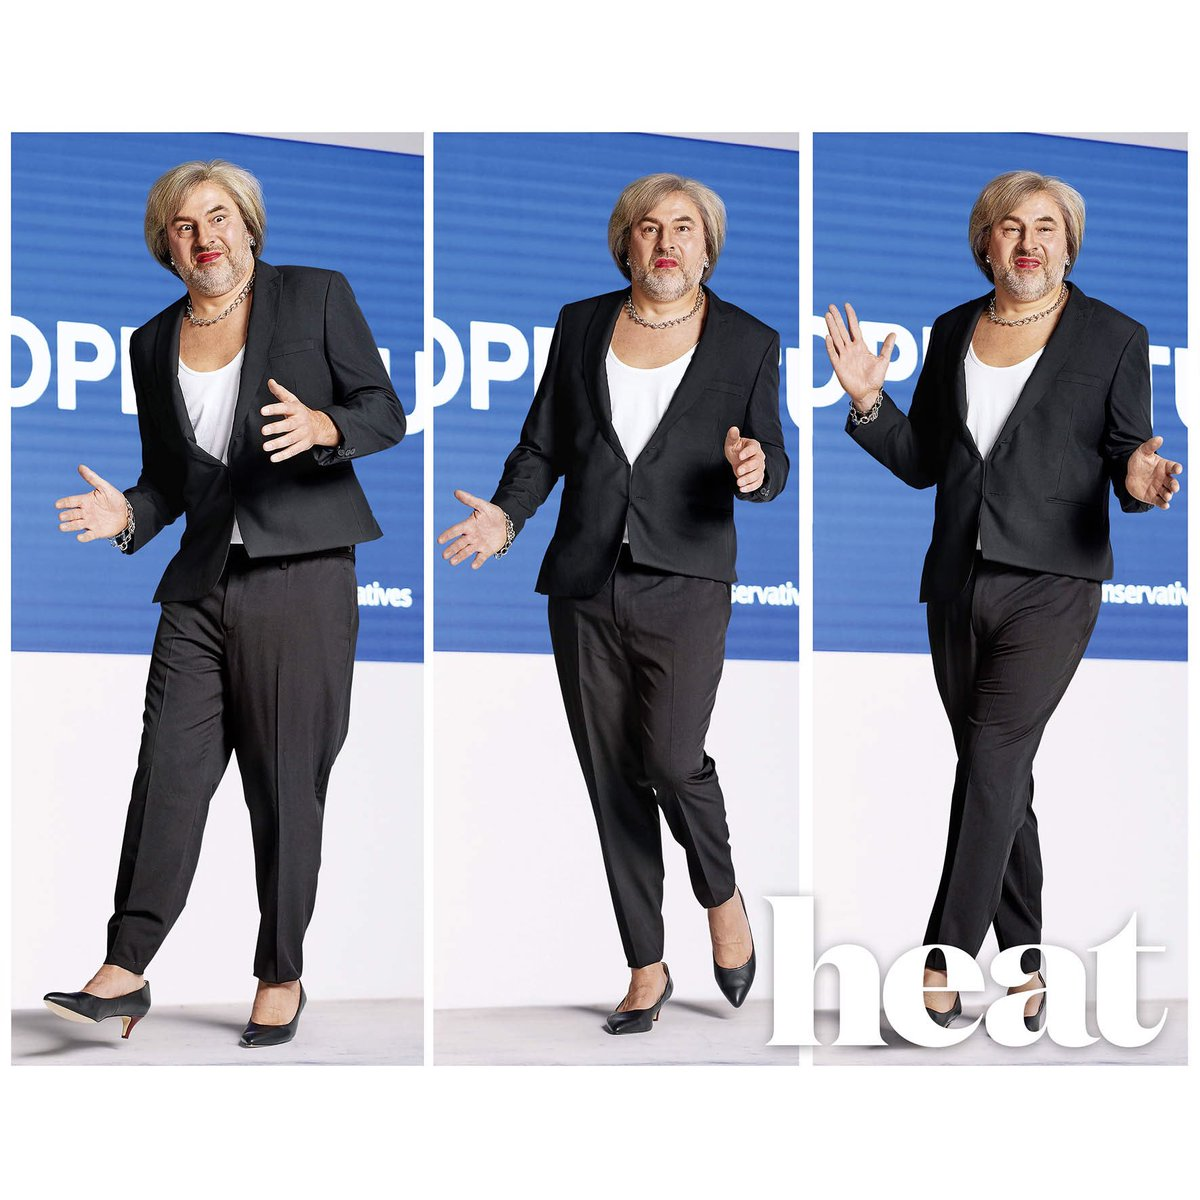 It's dress up time in Heat Magazine and here is me as Theresa May grooving to 'Dancing Queen'...